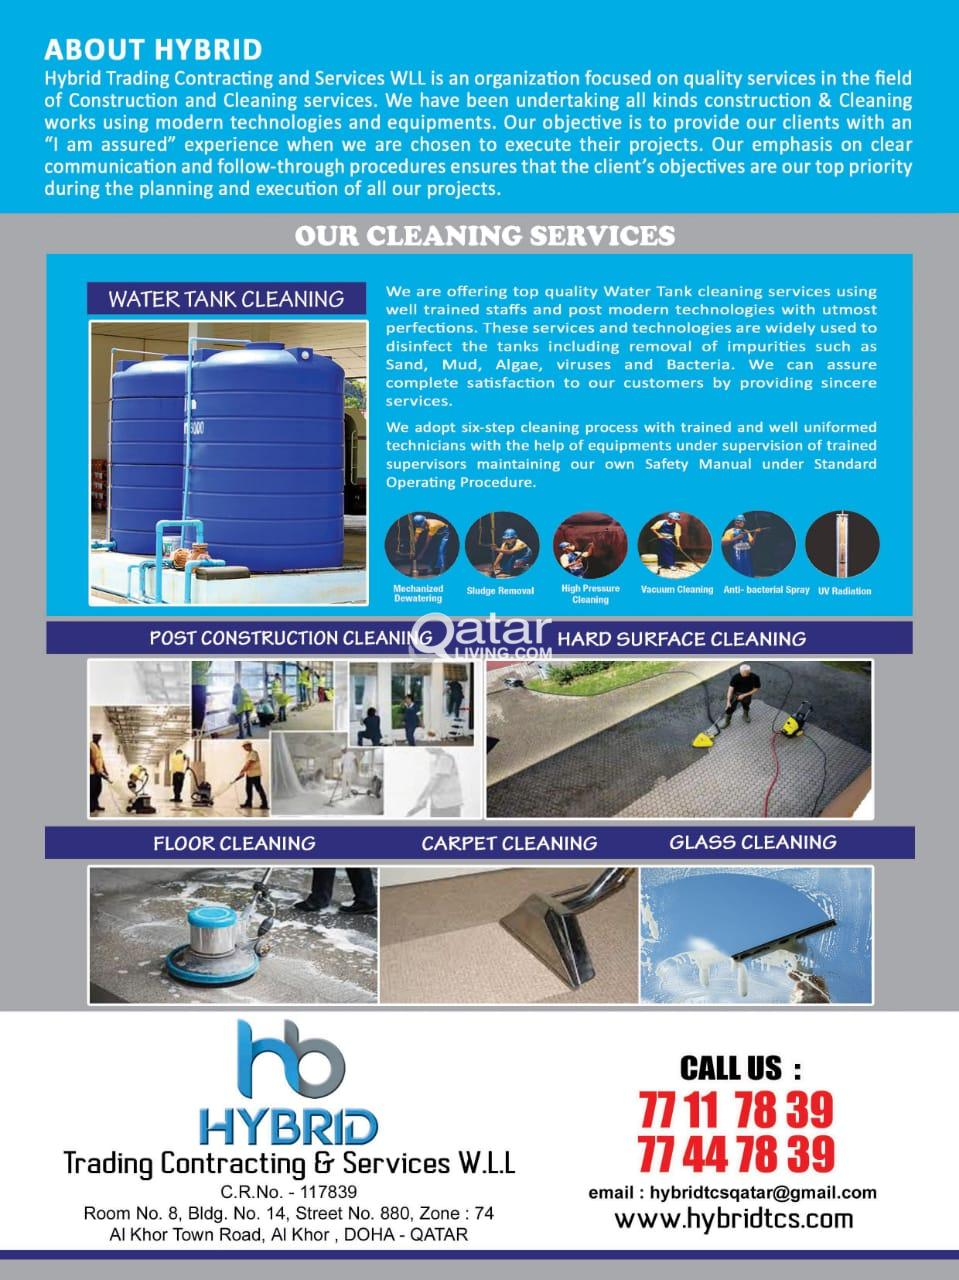 WATER TANK CLEANING AND DISINFECTION, OFFICE AND RESIDENTIAL